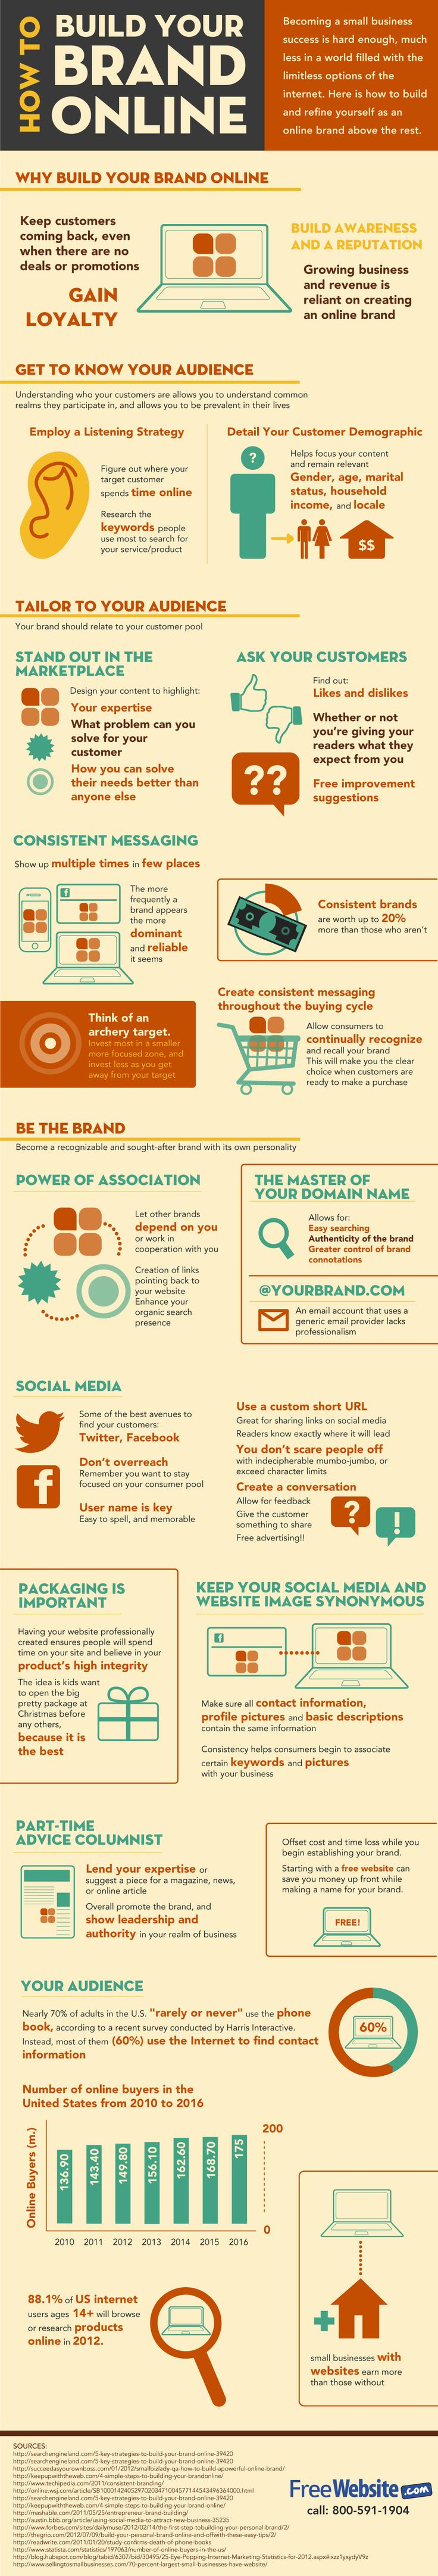 Build your Brand Online